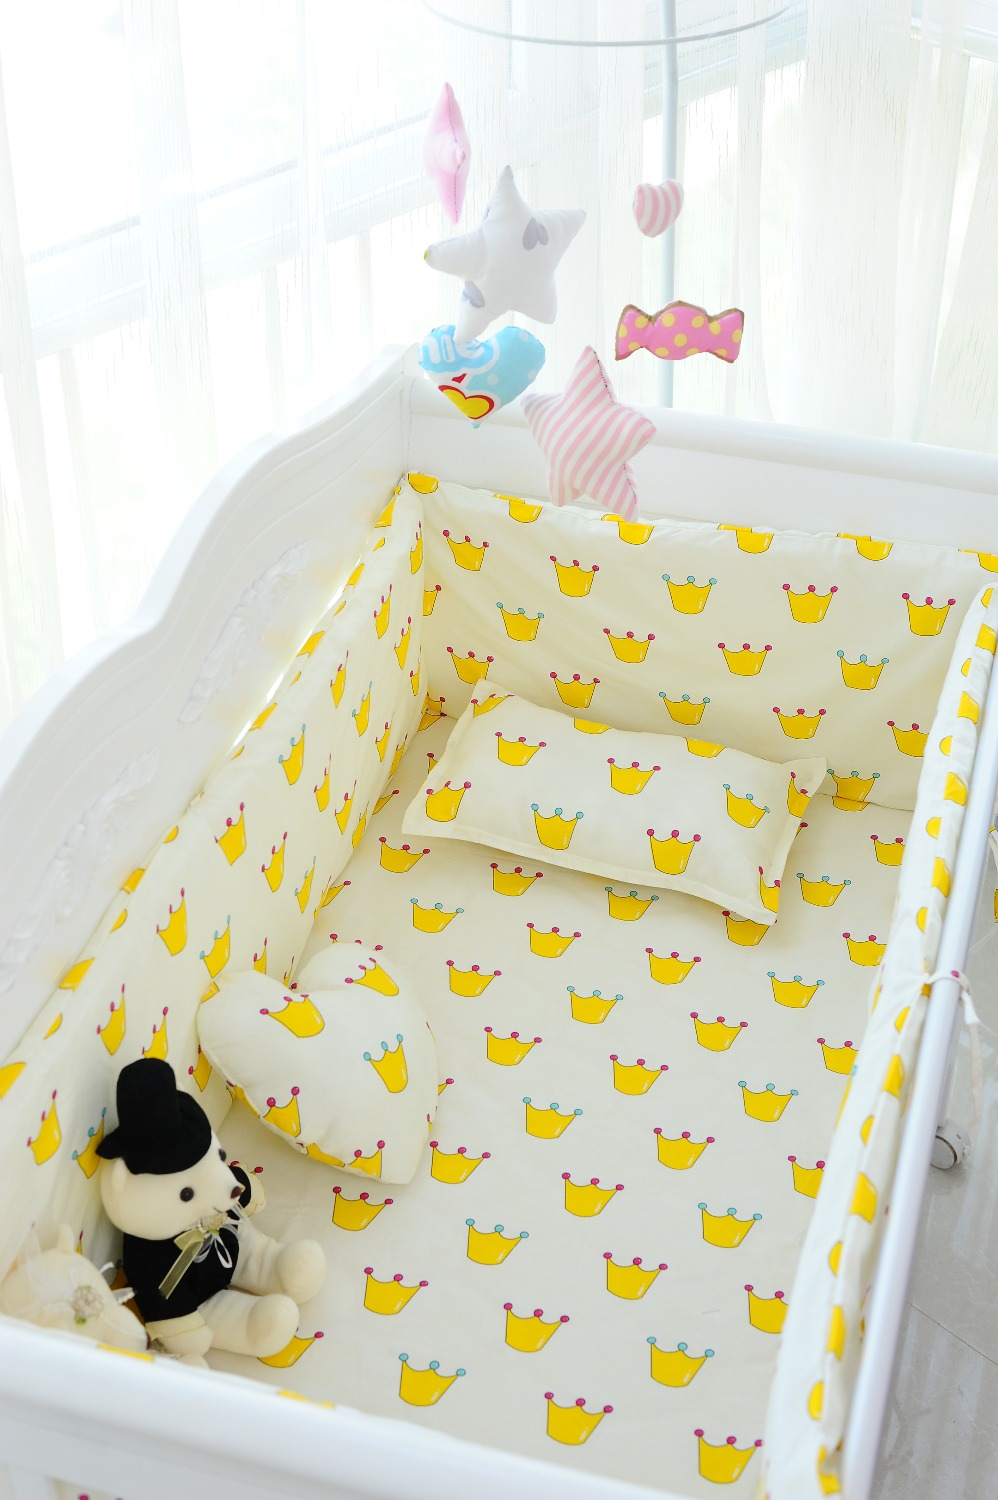 Promotion! 6PCS Baby Cot Bedding Set Baby cradle crib cot bedding set Crib Sheet  (bumpers+sheet+pillow cover) promotion 6pcs cot bedding set for girls boys baby crib bedding set bumpers sheet pillow cover